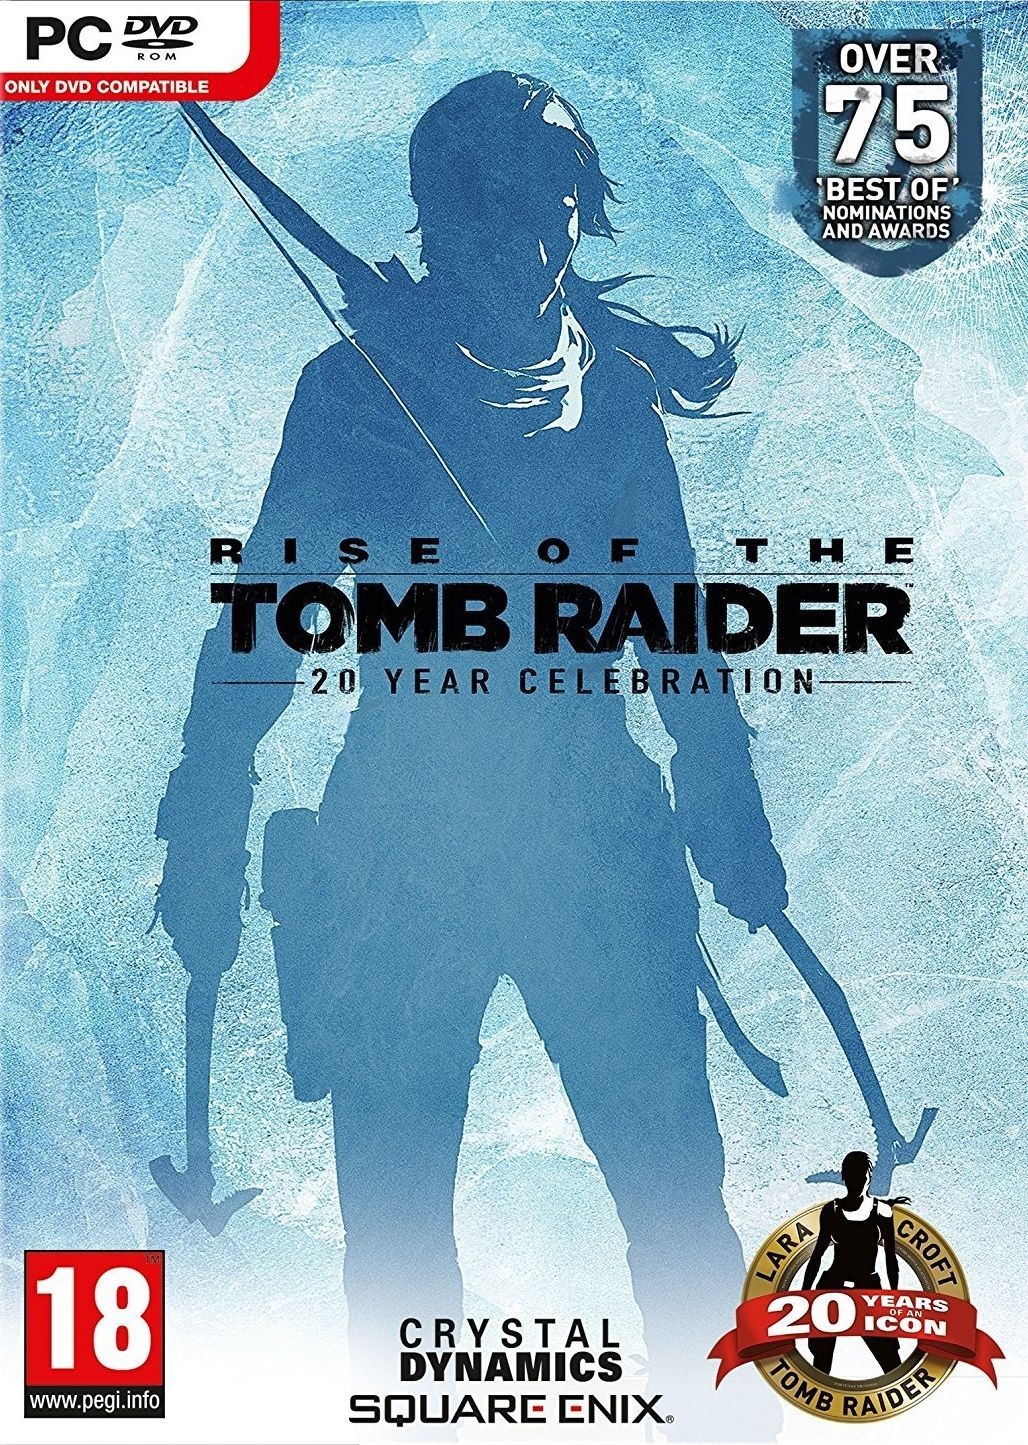 Rise of the Tomb Raider - 20 Year Celebration (PC) - 1